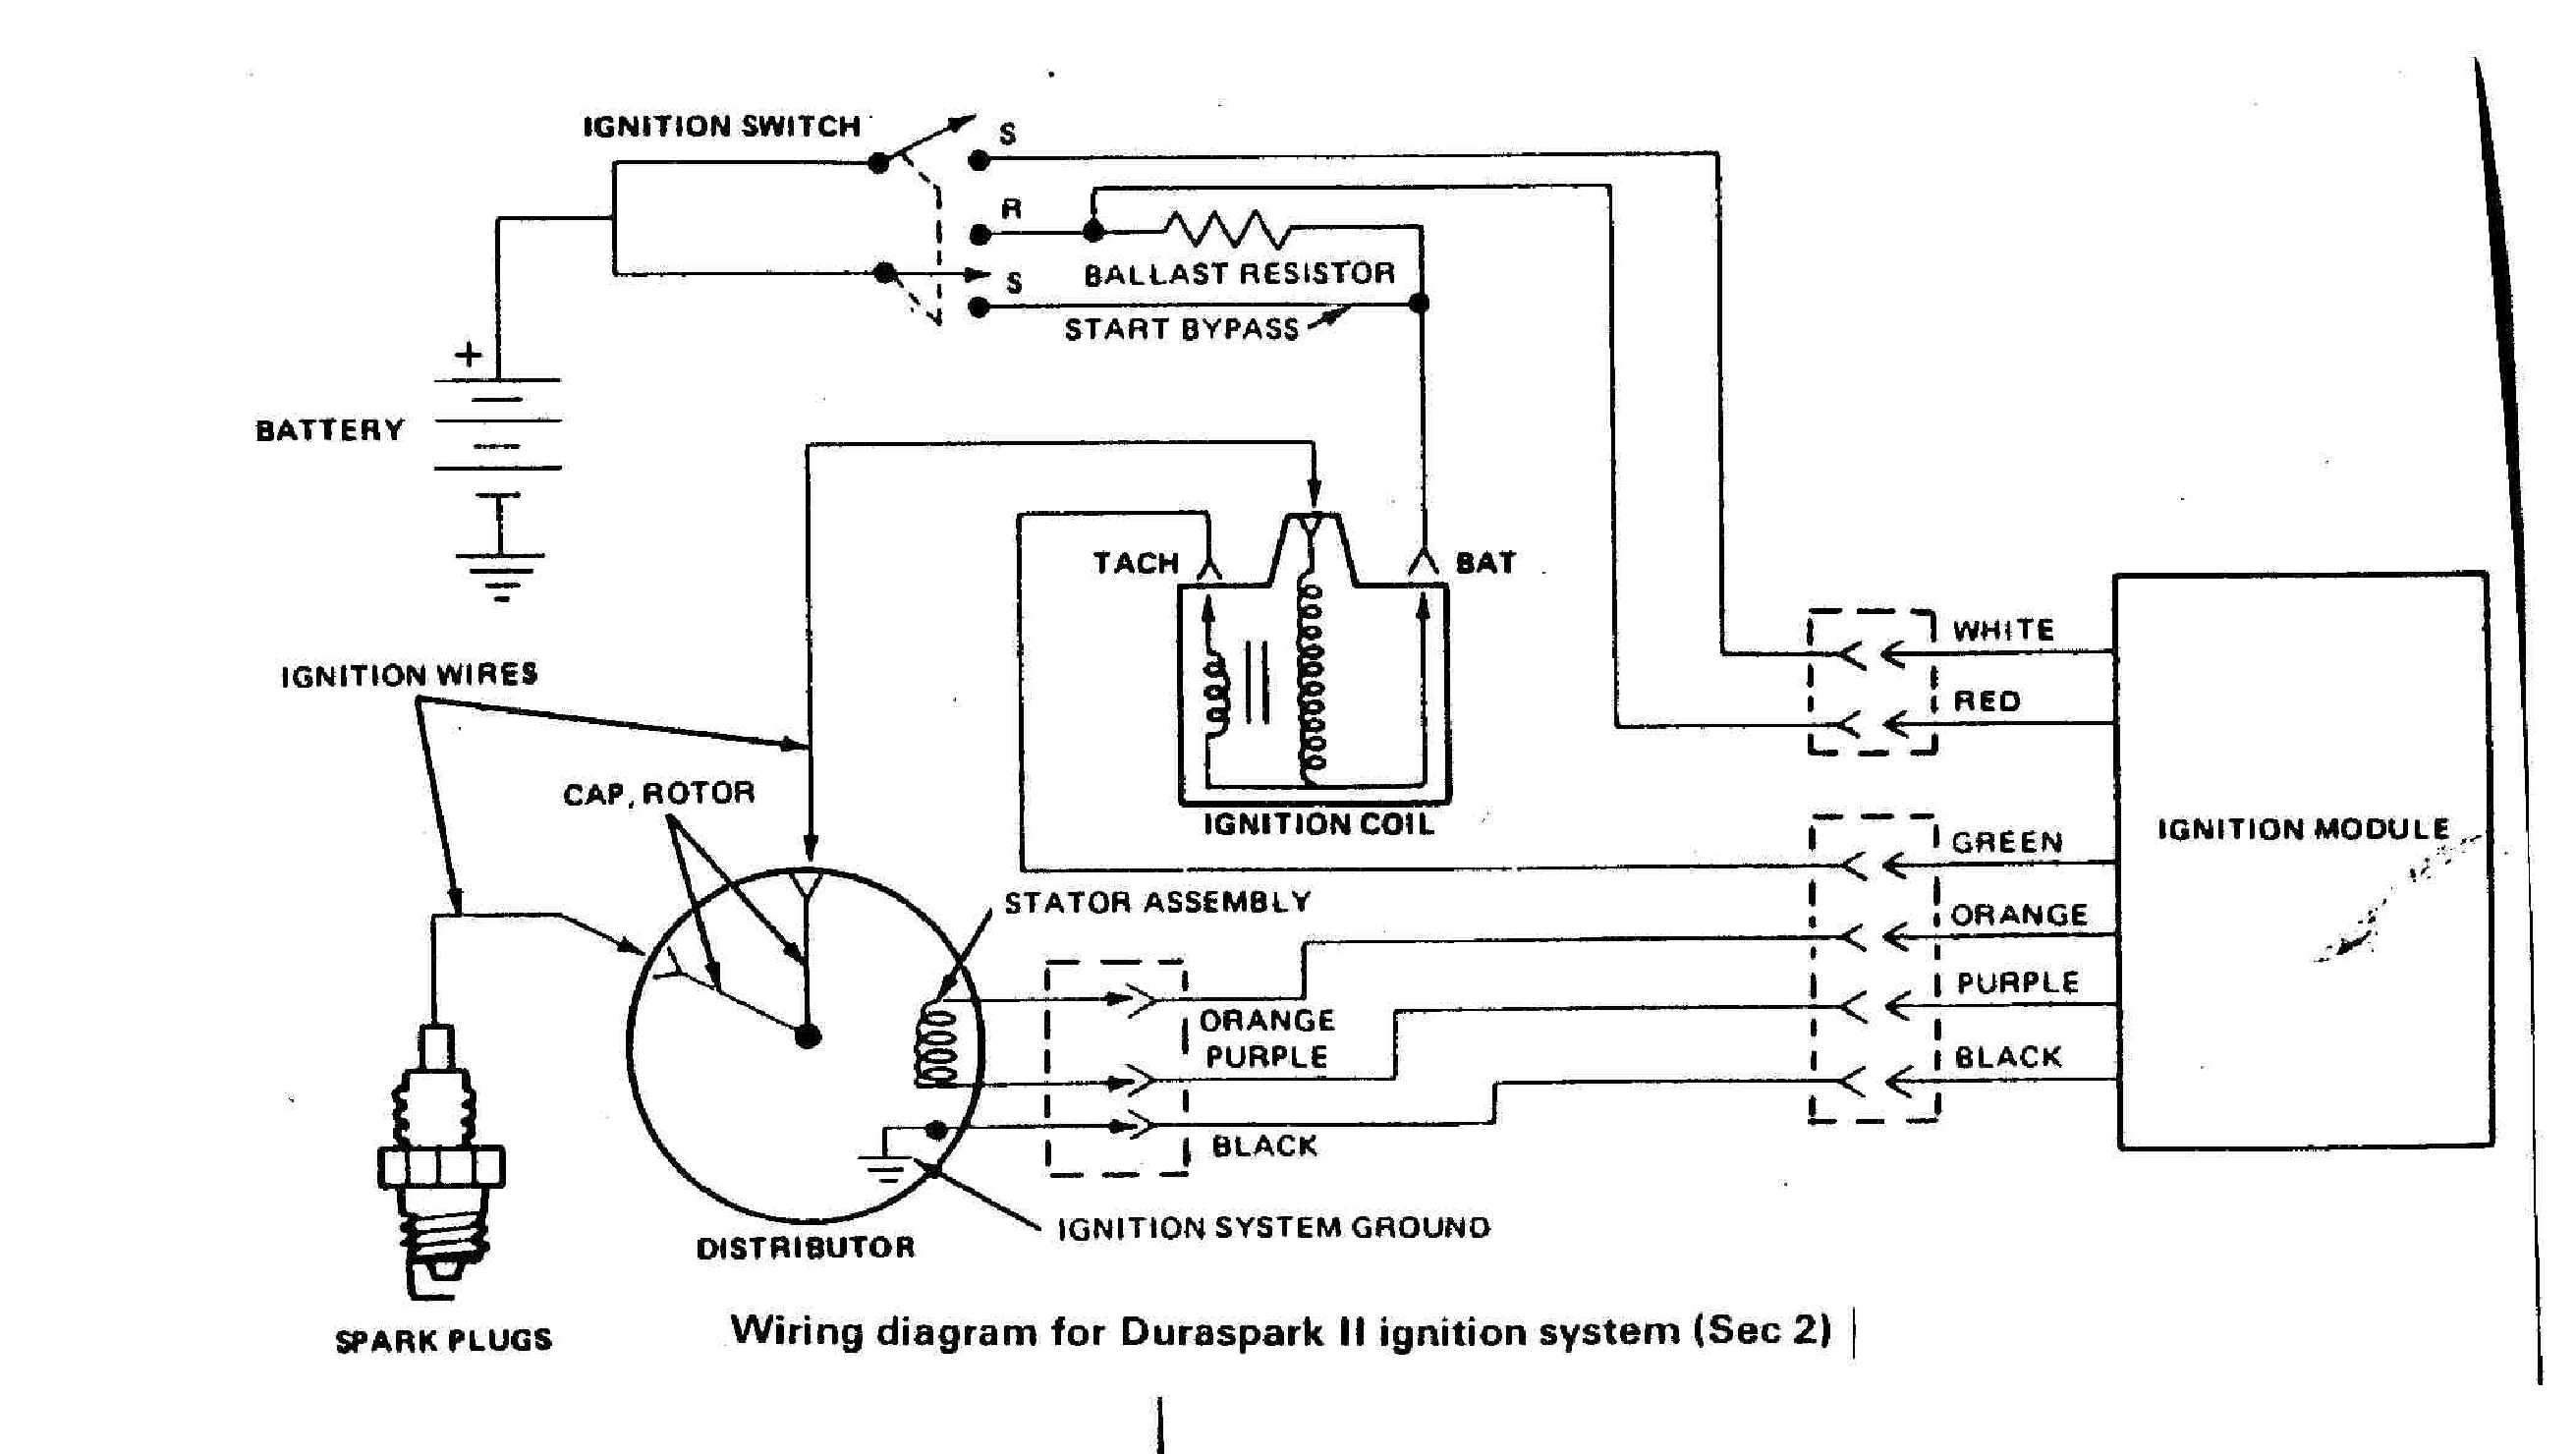 duraspark 2 3 ford install ford distributor diagram at crackthecode.co